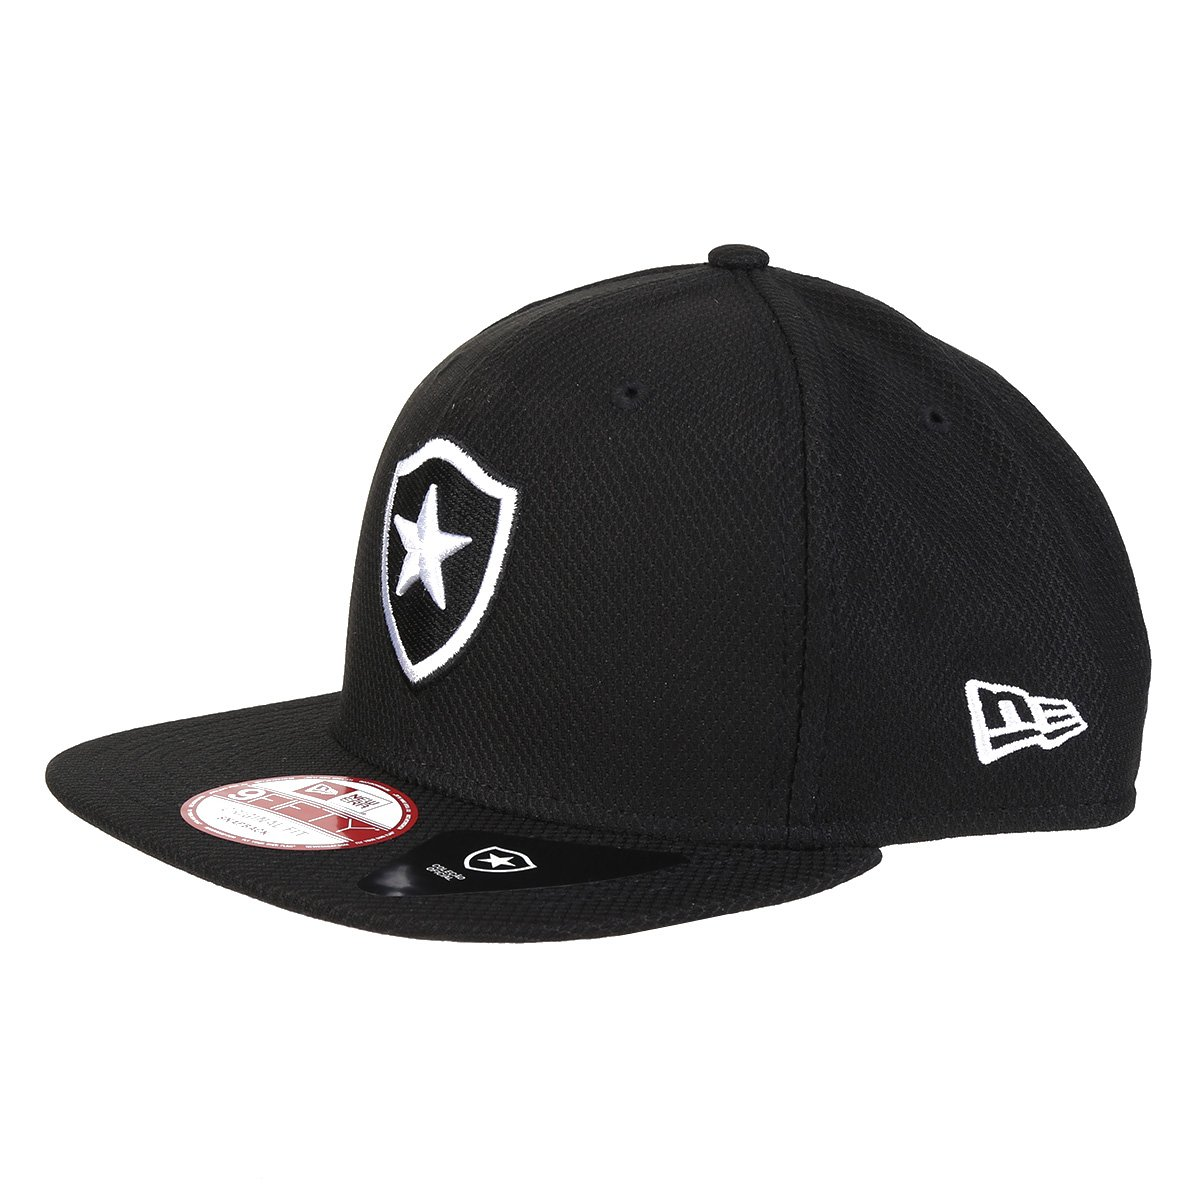 Boné New Era Botafogo Of Sn Dark 9Fifty Aba Reta